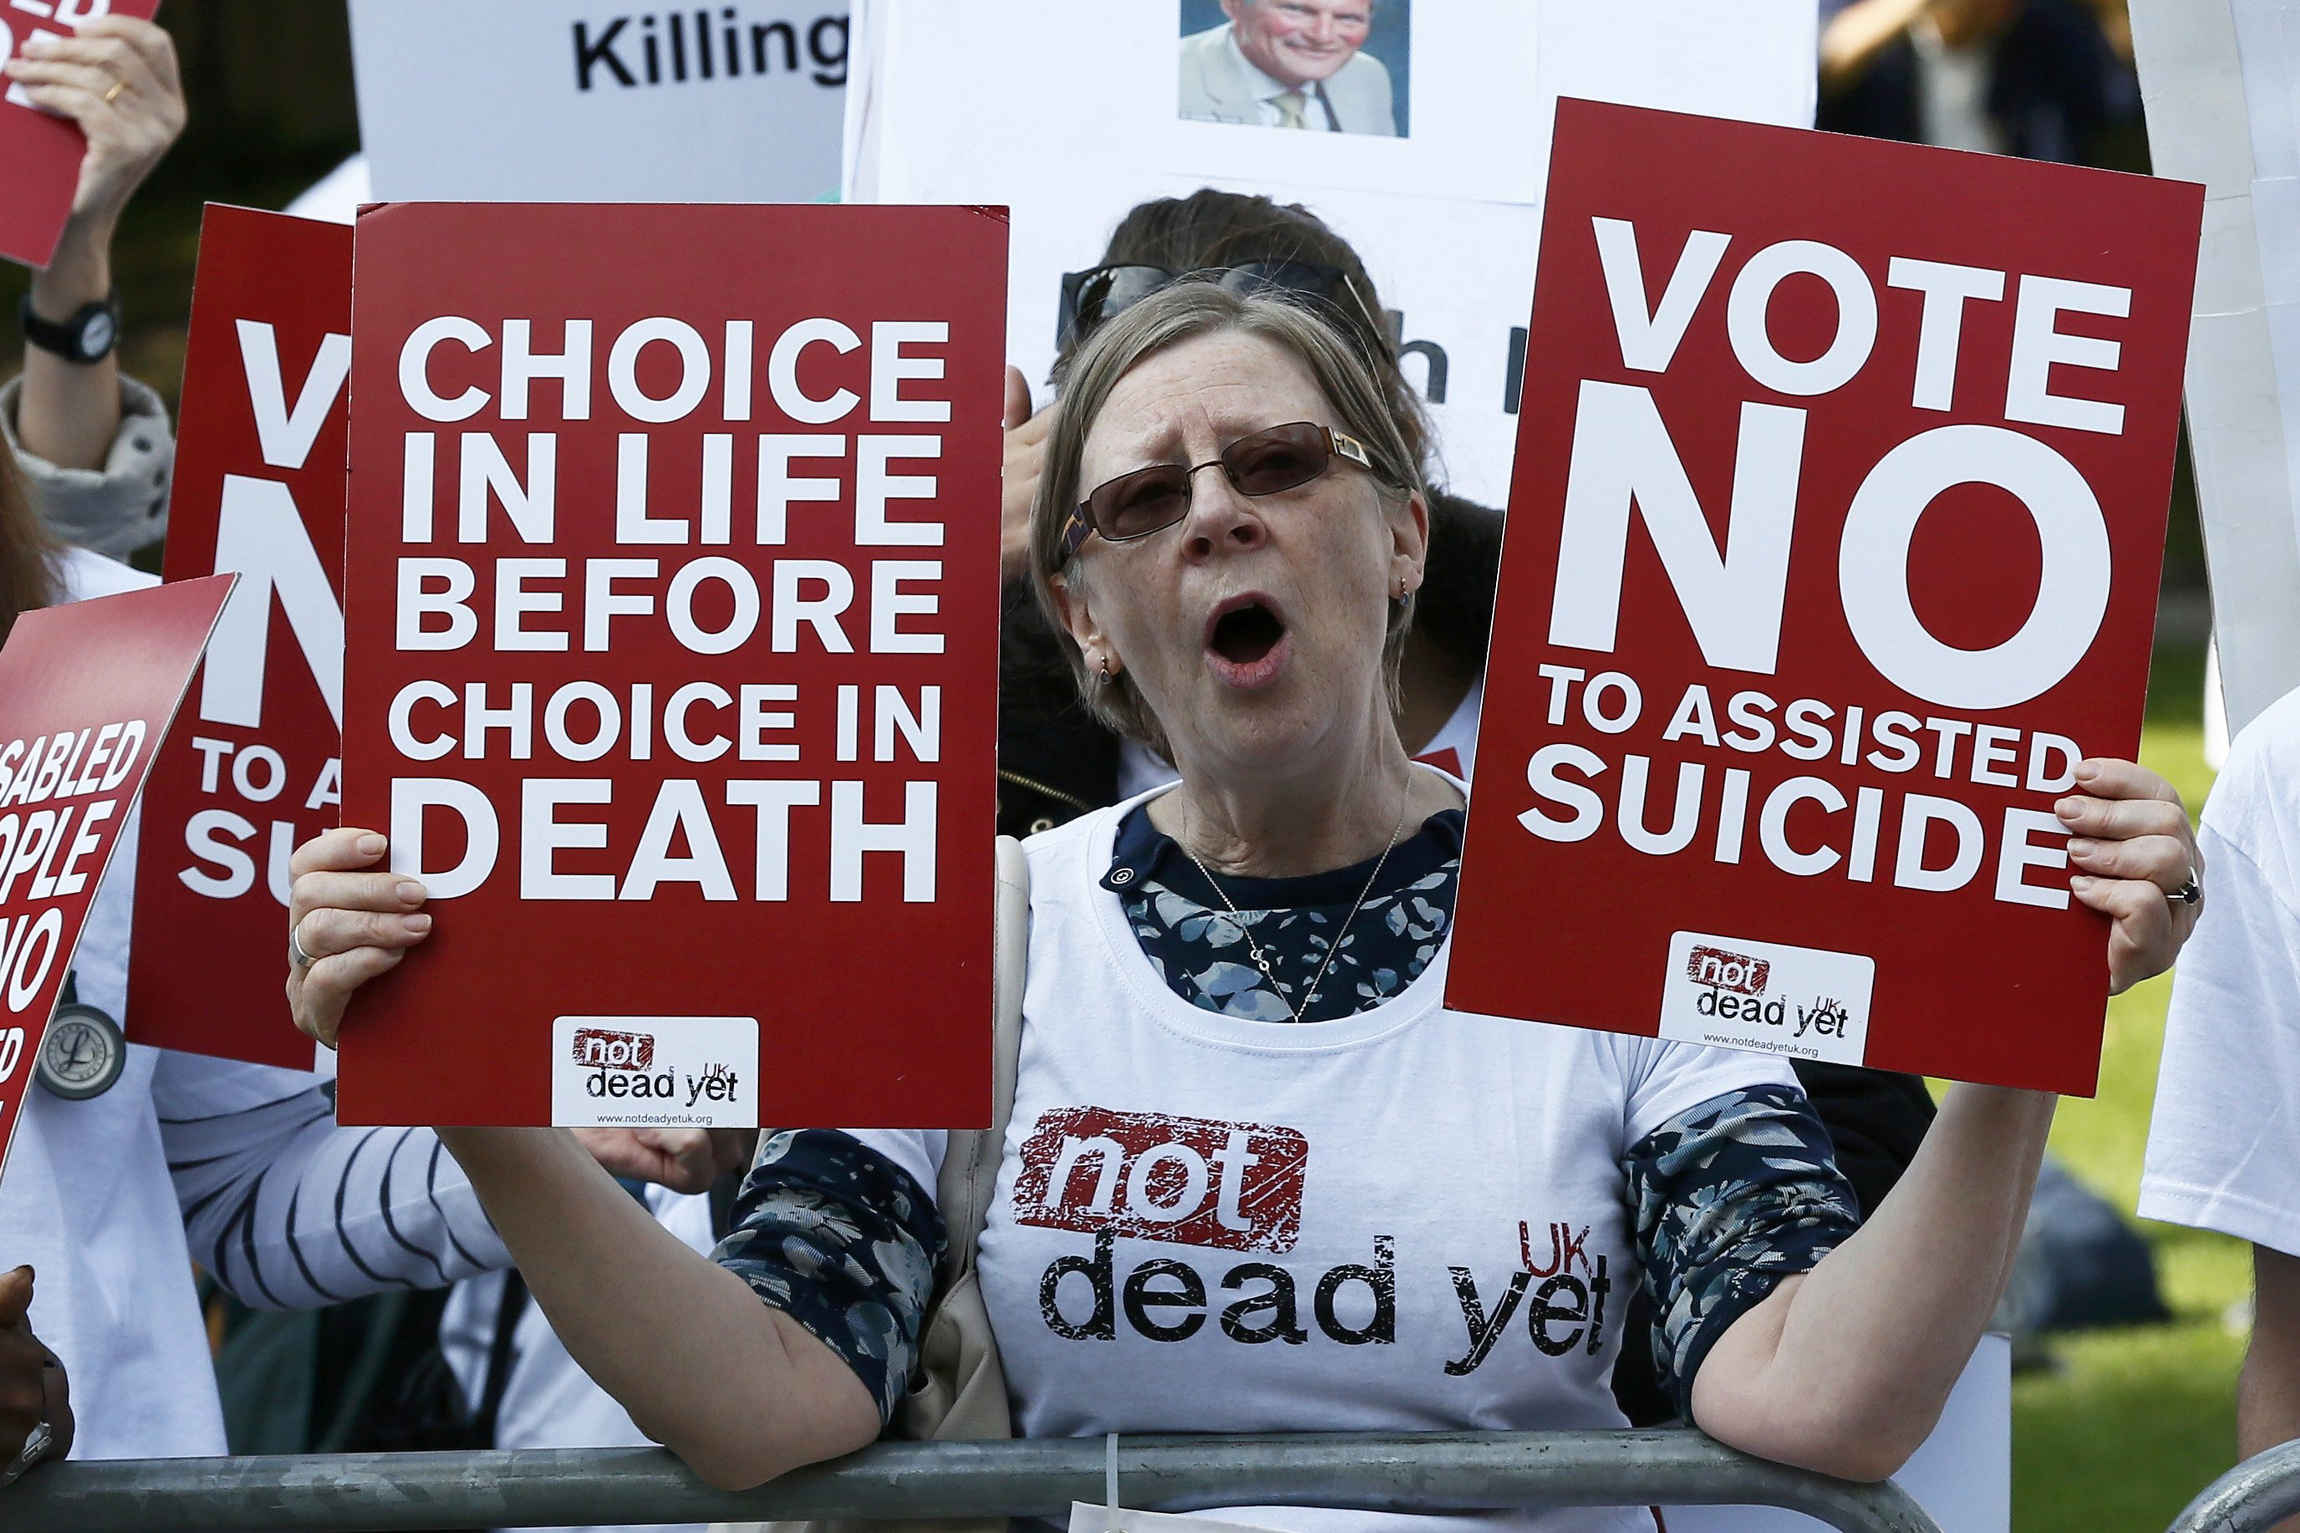 an argument in favor of the legalization of euthanasia and assisted suicide